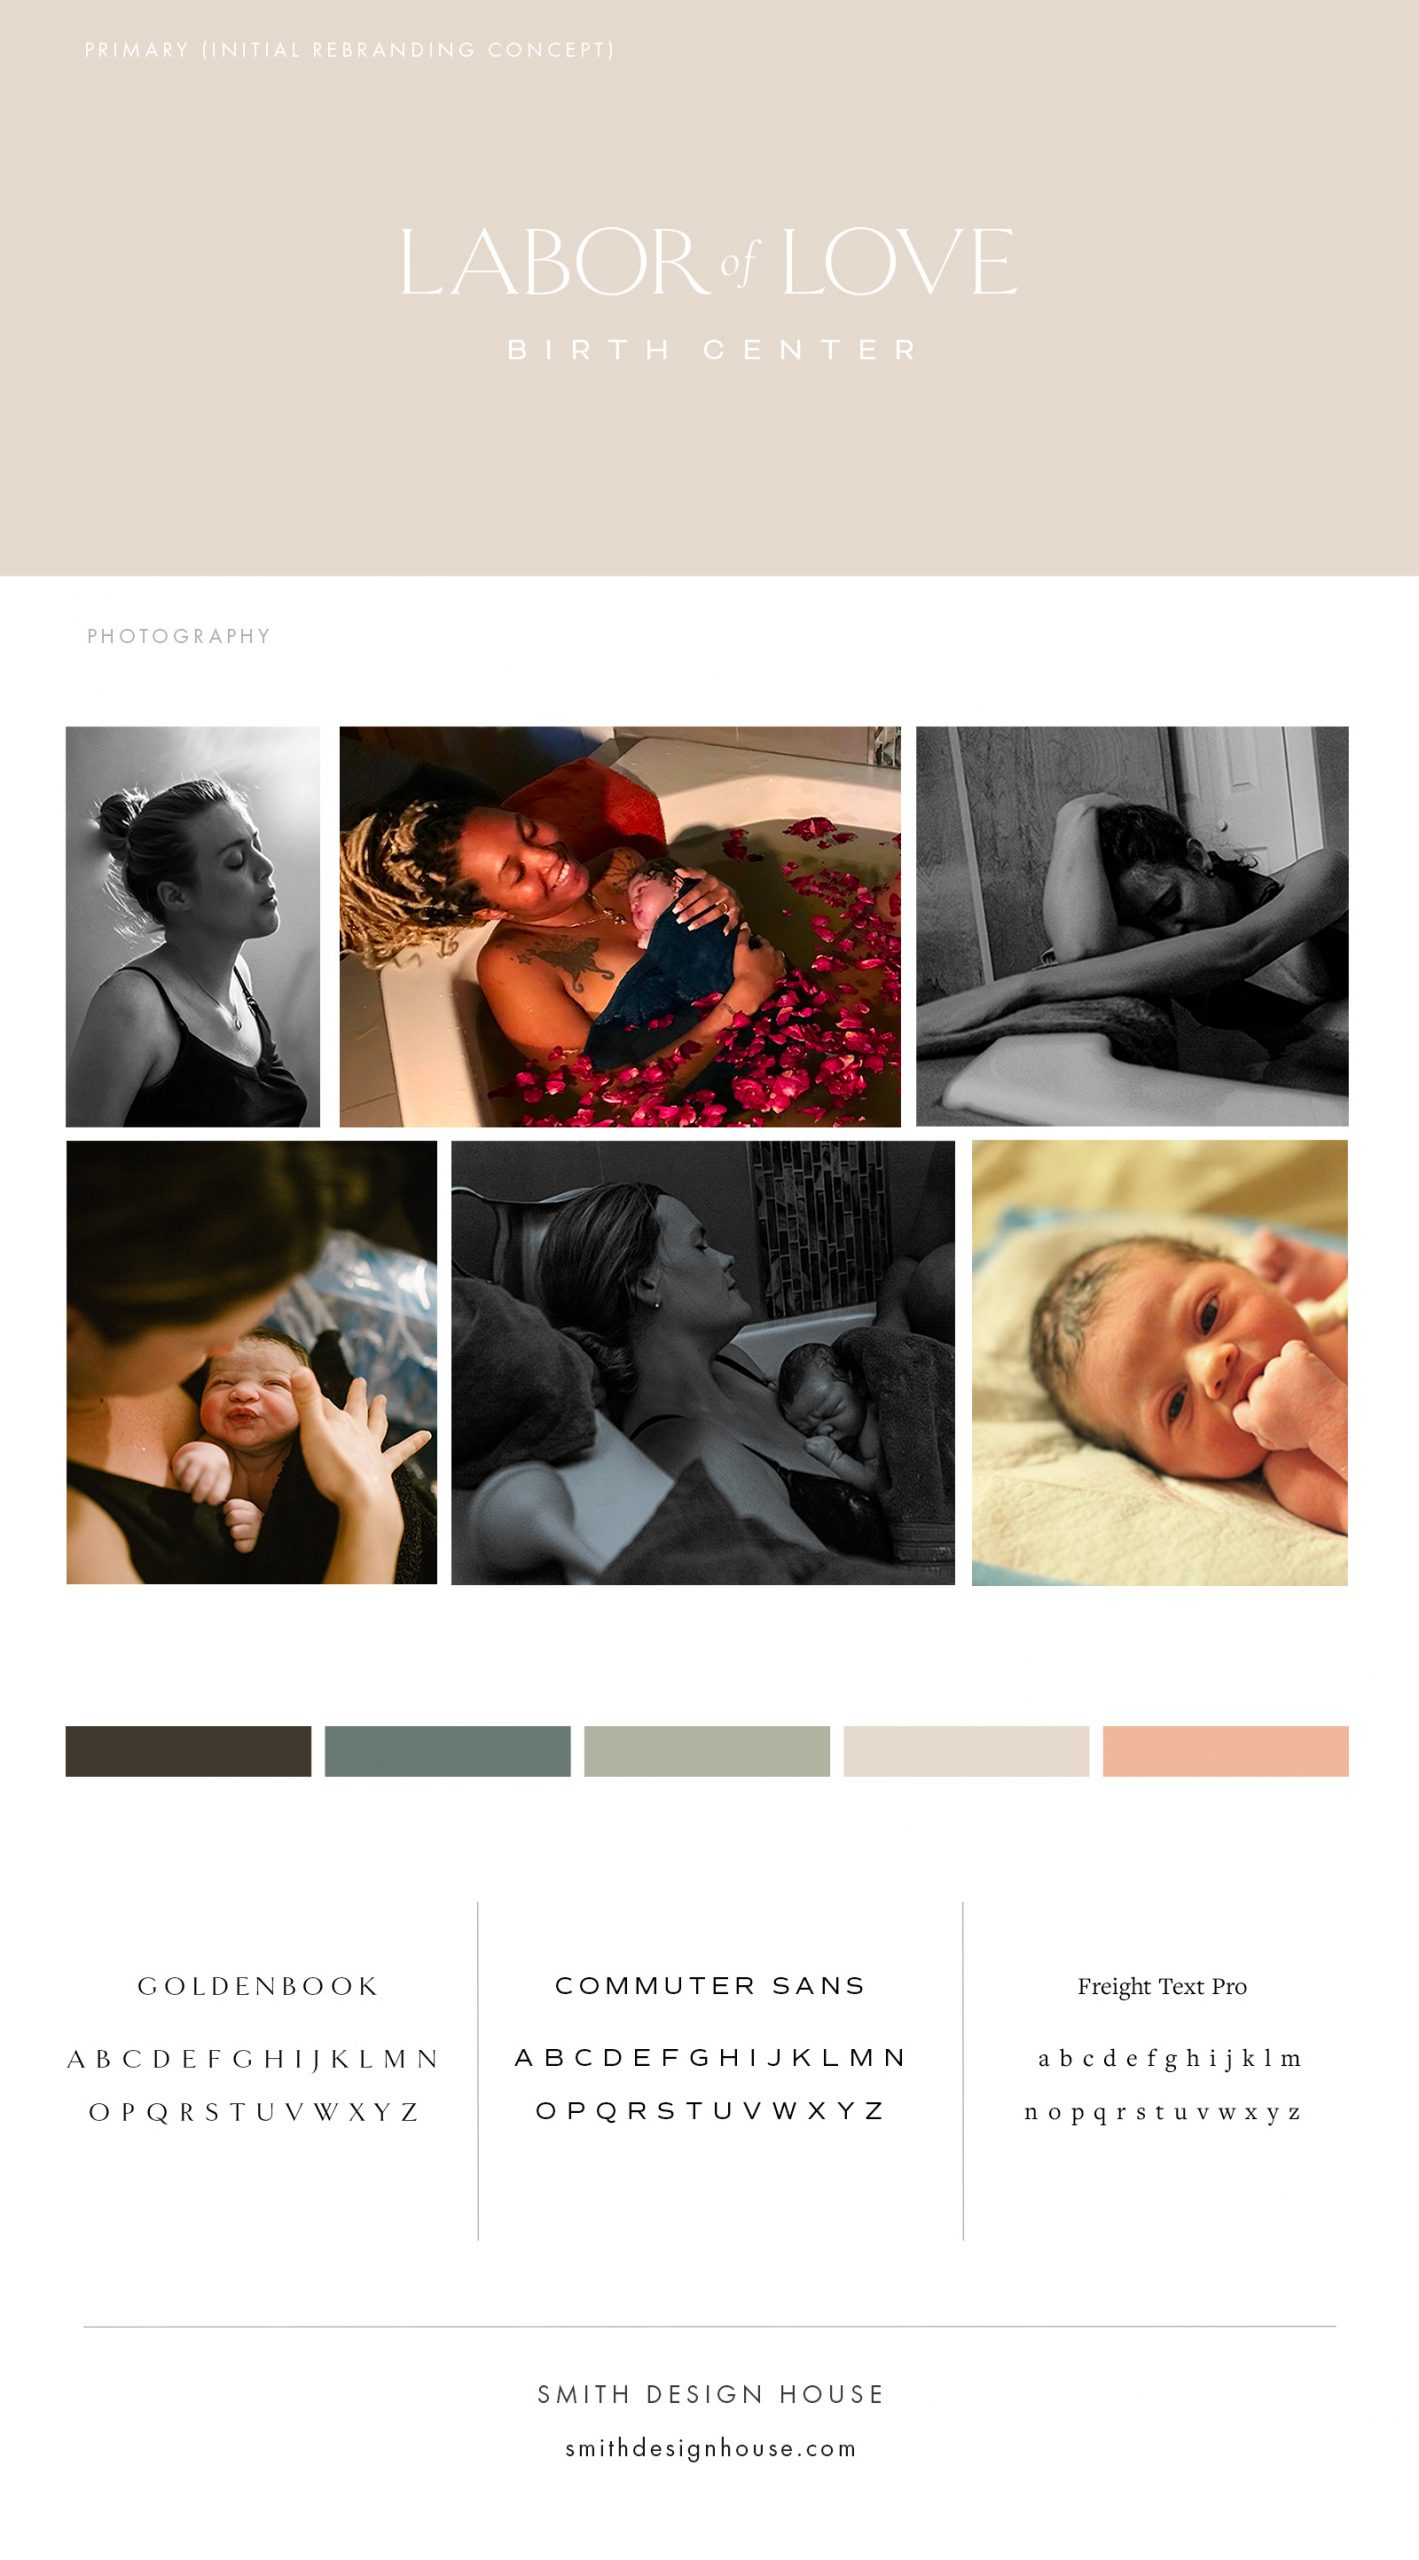 Labor of Love website brand board by Smith Design House